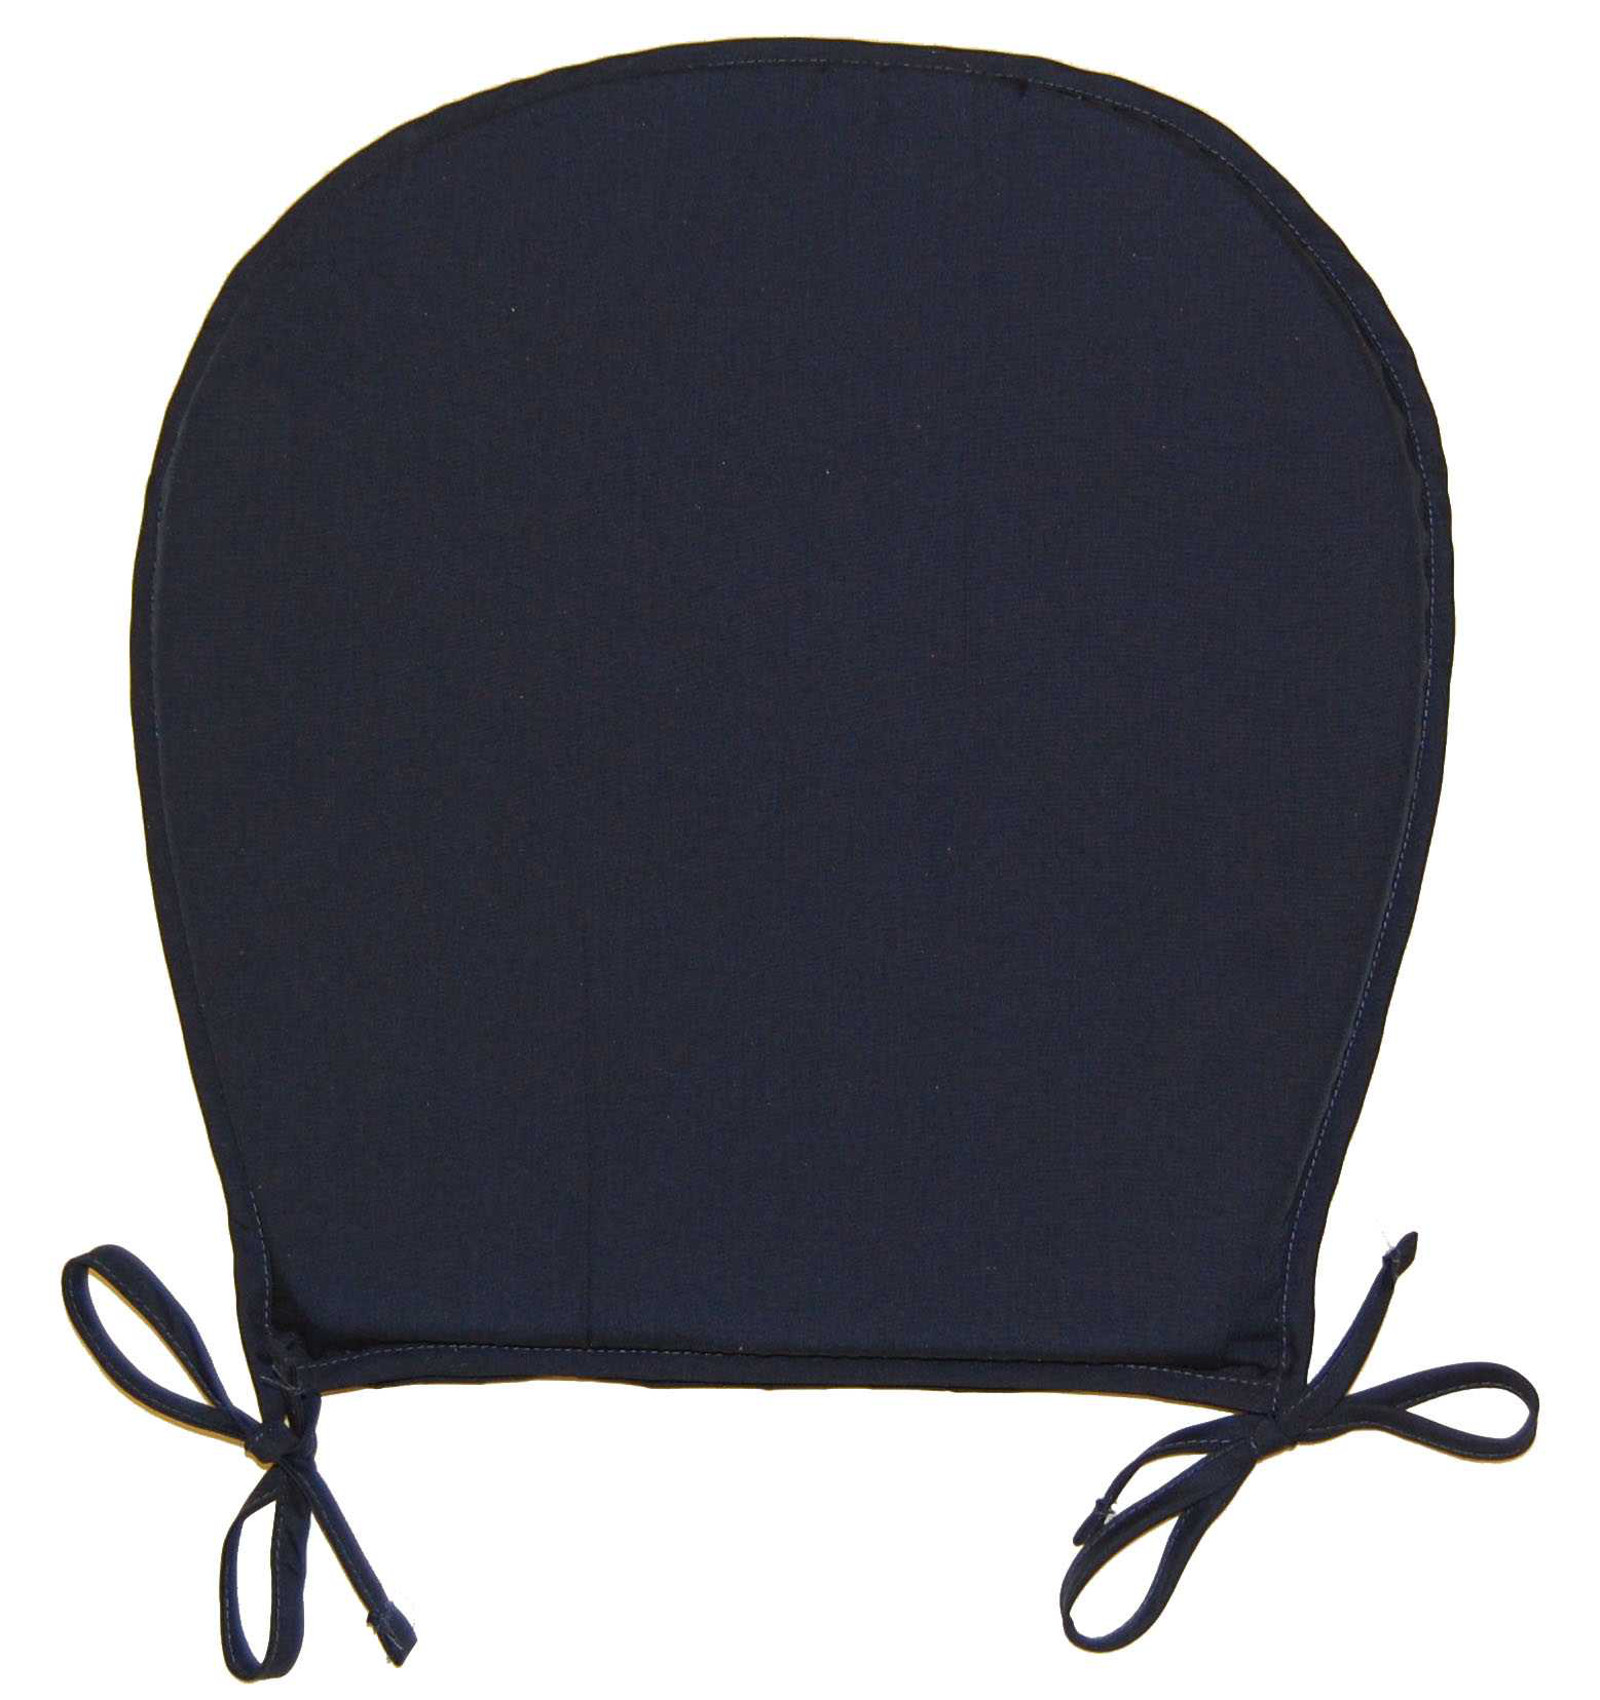 navy blue patio chair cushions black rocking chairs cracker barrel round kitchen seat pad garden furniture dining room